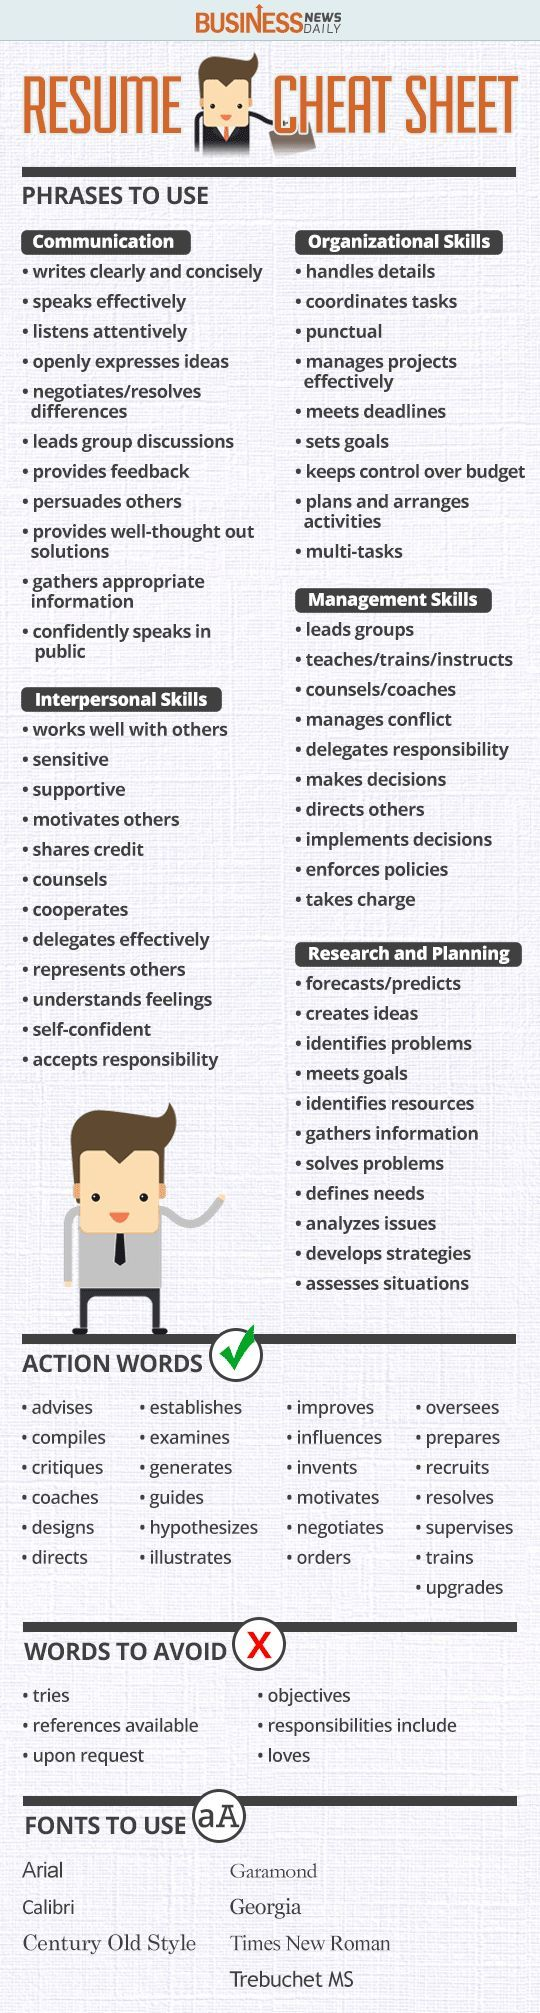 Resume Cheat Sheet for any of my buddies who may need it. #infographic